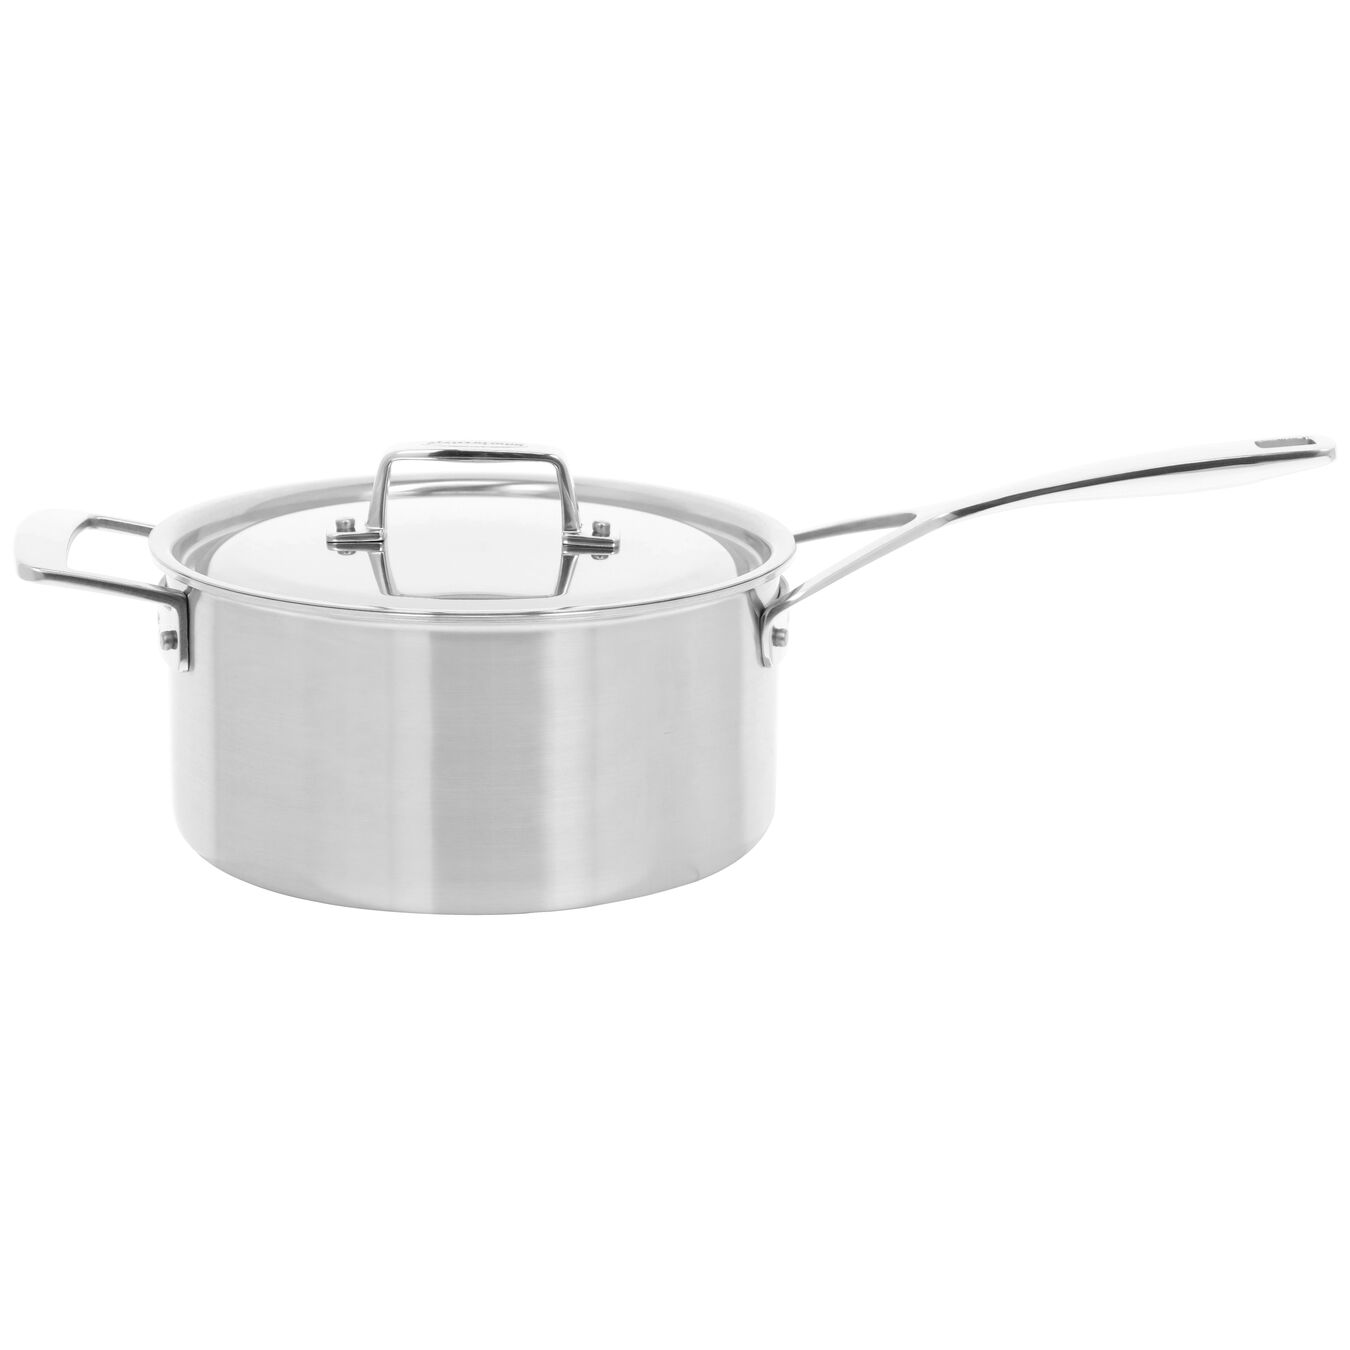 2.8 l round sauce pan with lid 3QT, silver,,large 2